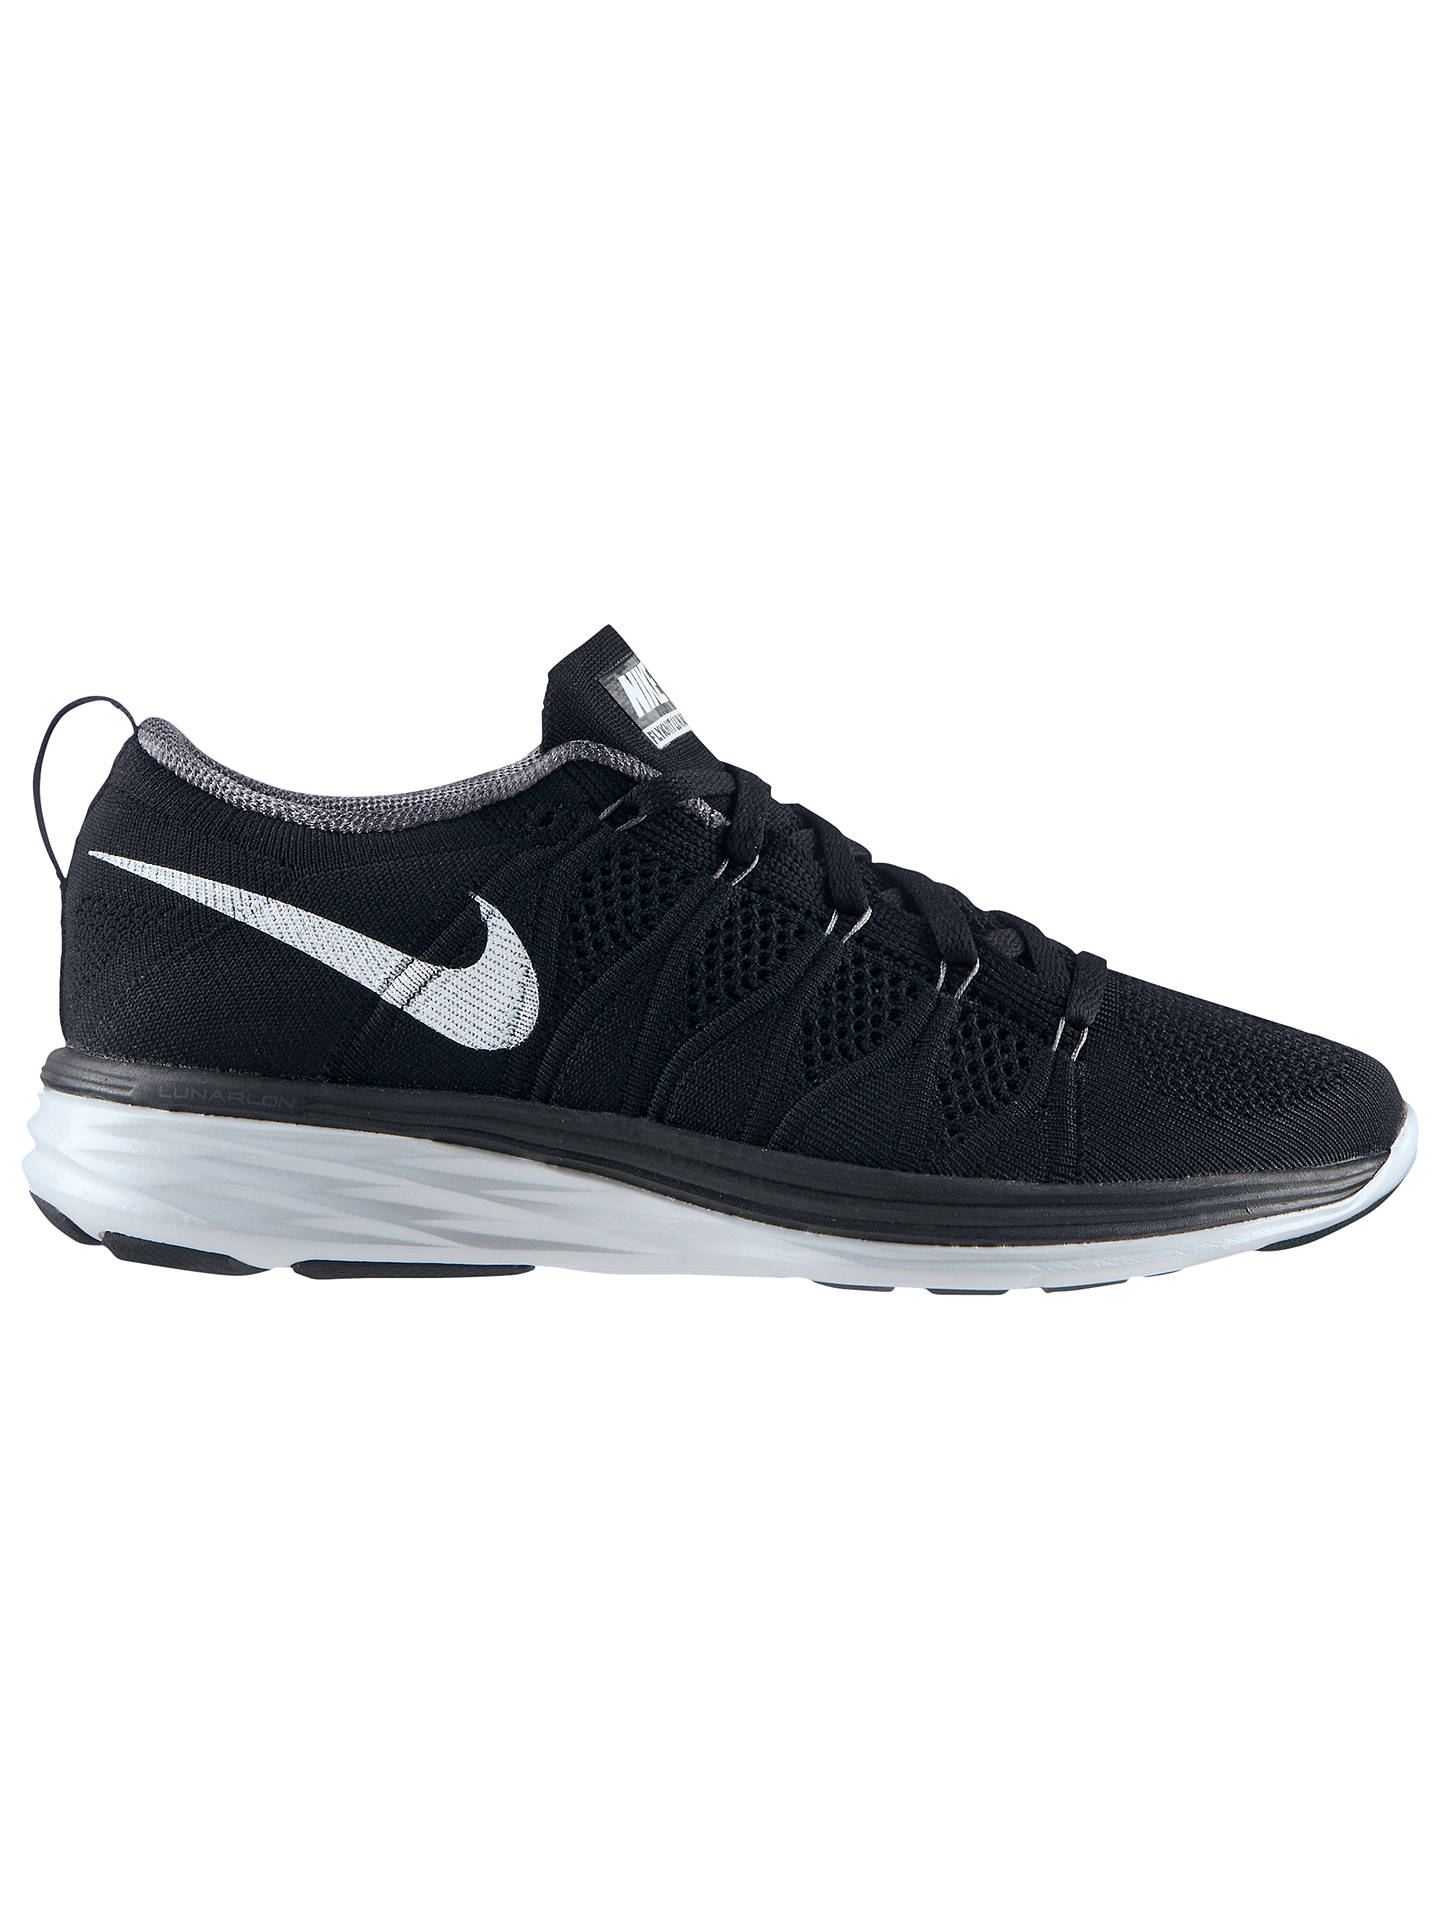 the latest 3f31d 0c06d Buy Nike Flyknit Lunar 2 Women s Running Shoes, Black White, 4.5 Online at  ...